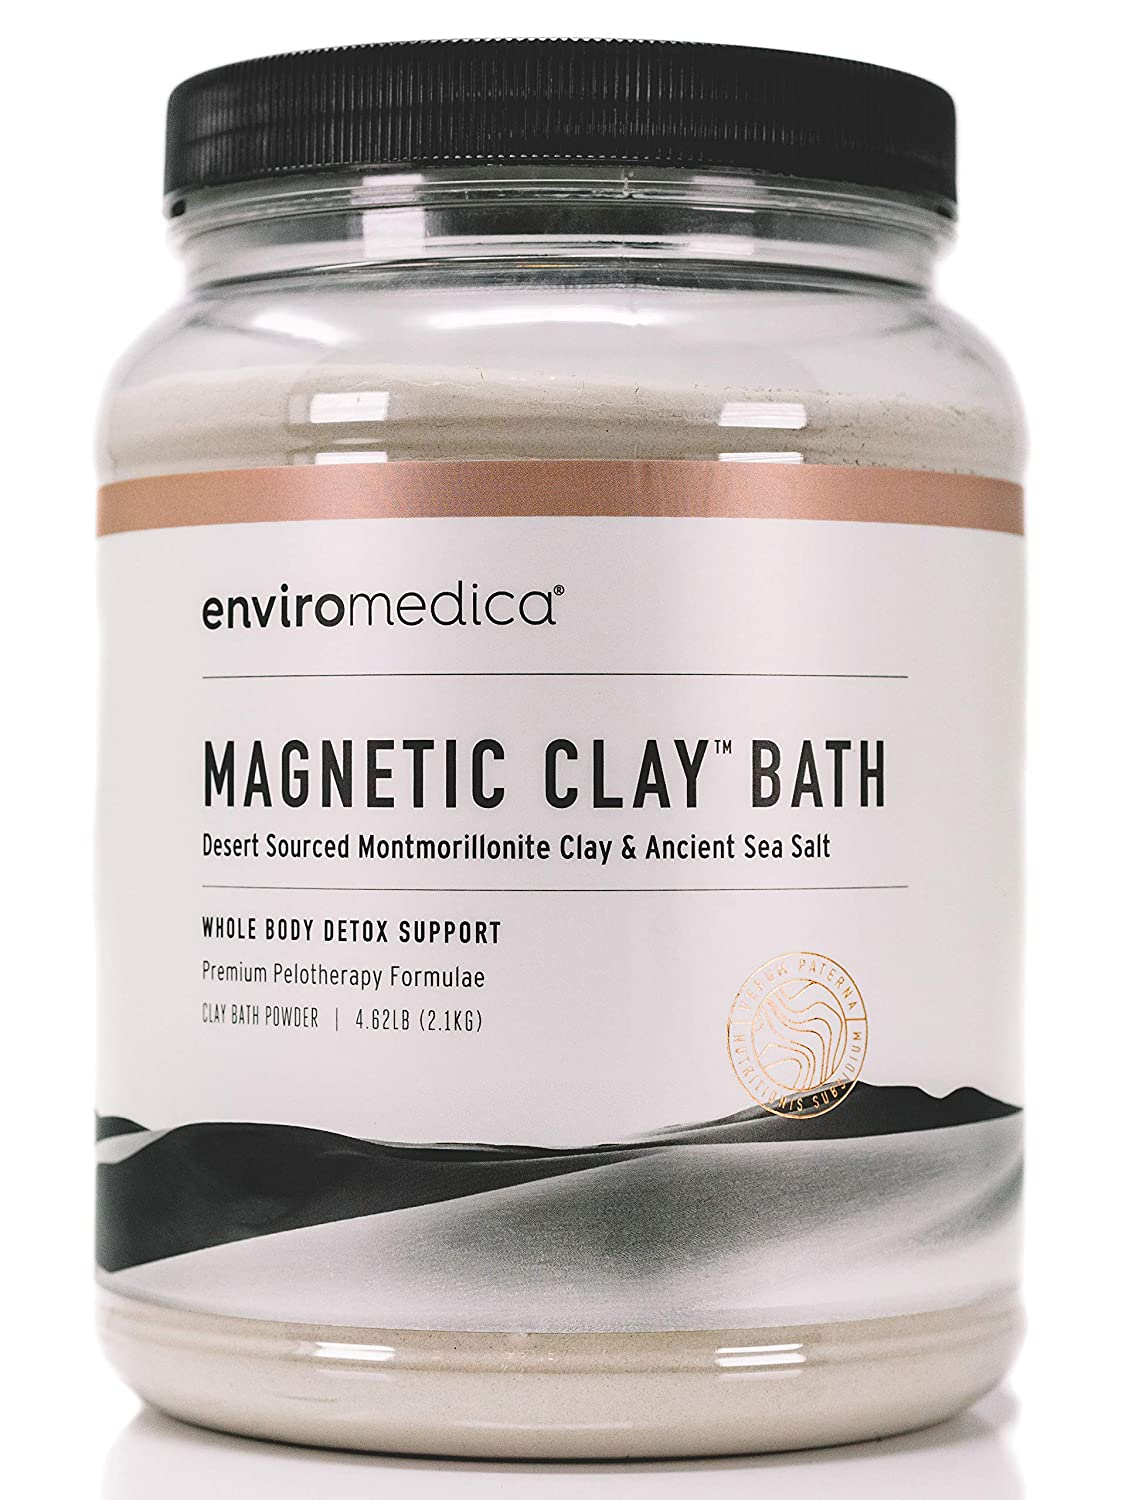 Enviromedica Magnetic Clay Natural Detox Bath Cleanse – Ancient Sodium and Calcium Bentonite Clay Powder with Himalayan Pink Salt for Detoxification of Harmful Toxins and Environmental Allergens